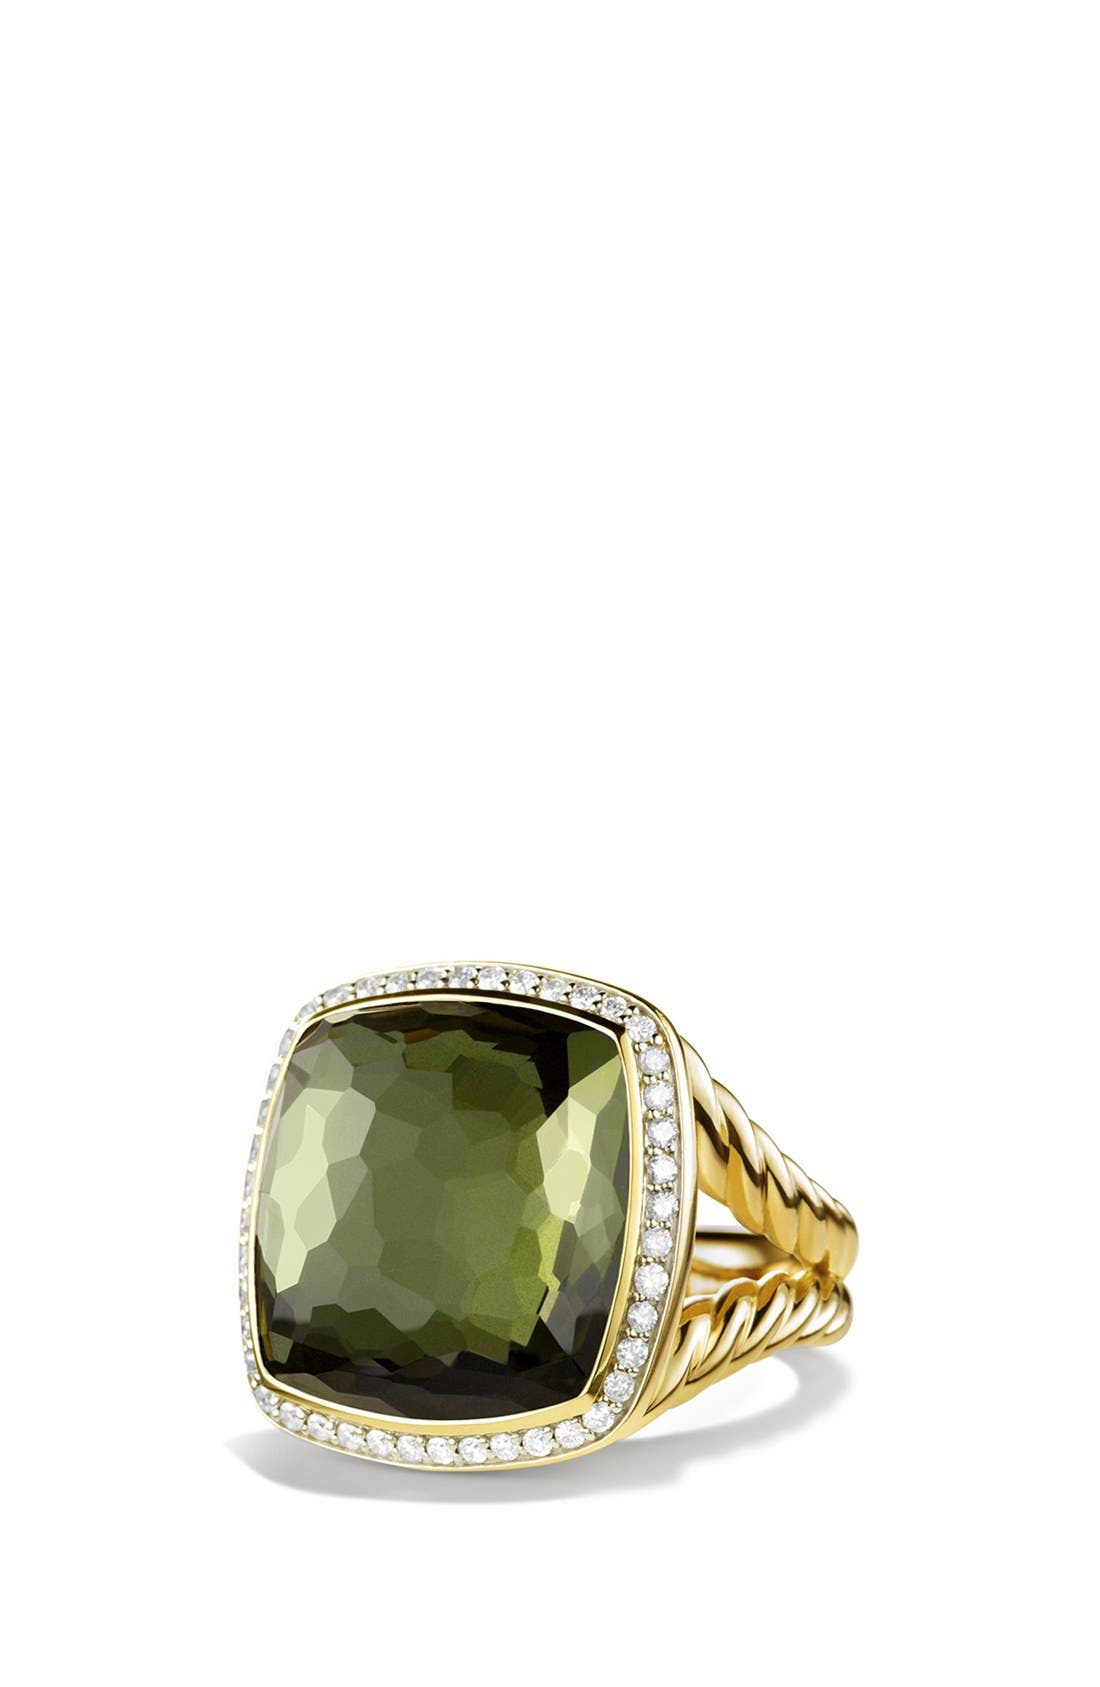 Main Image - David Yurman 'Albion' Ring with Citrine and Diamonds in Gold